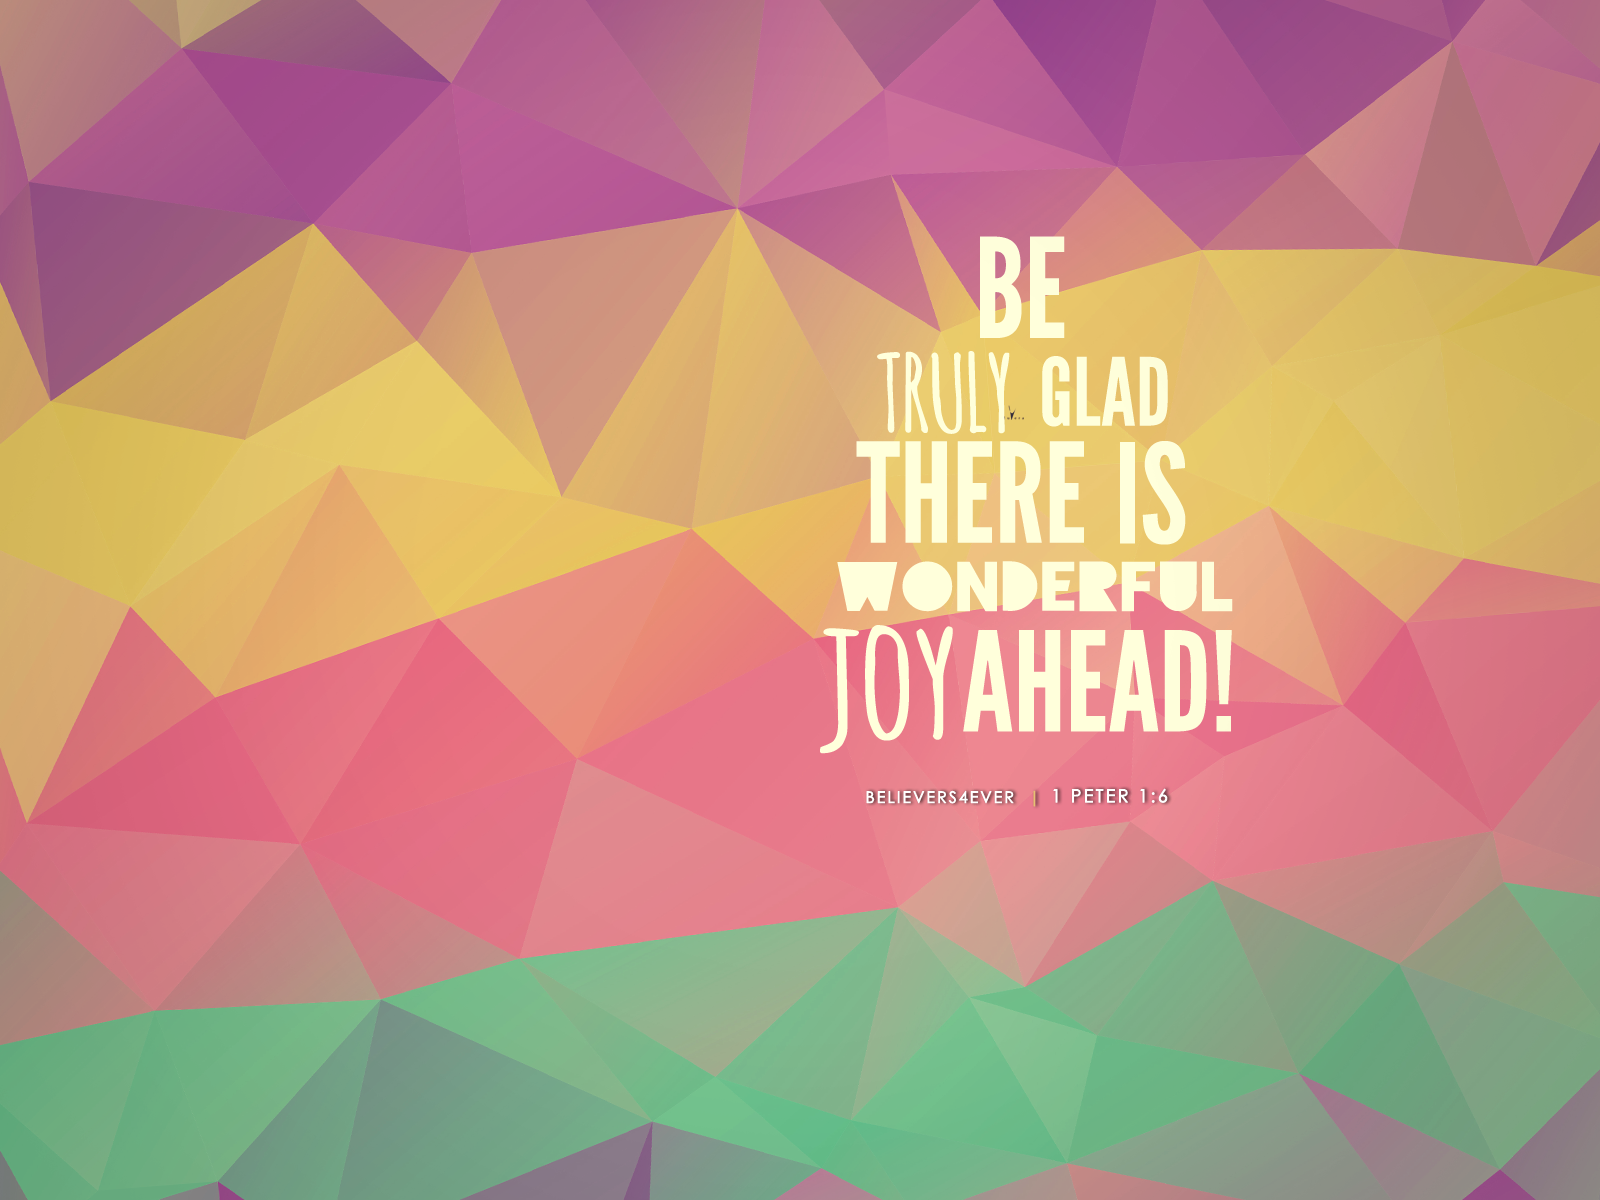 Be truly glad, there is wonderful joy ahead Christian desktop wallpaper